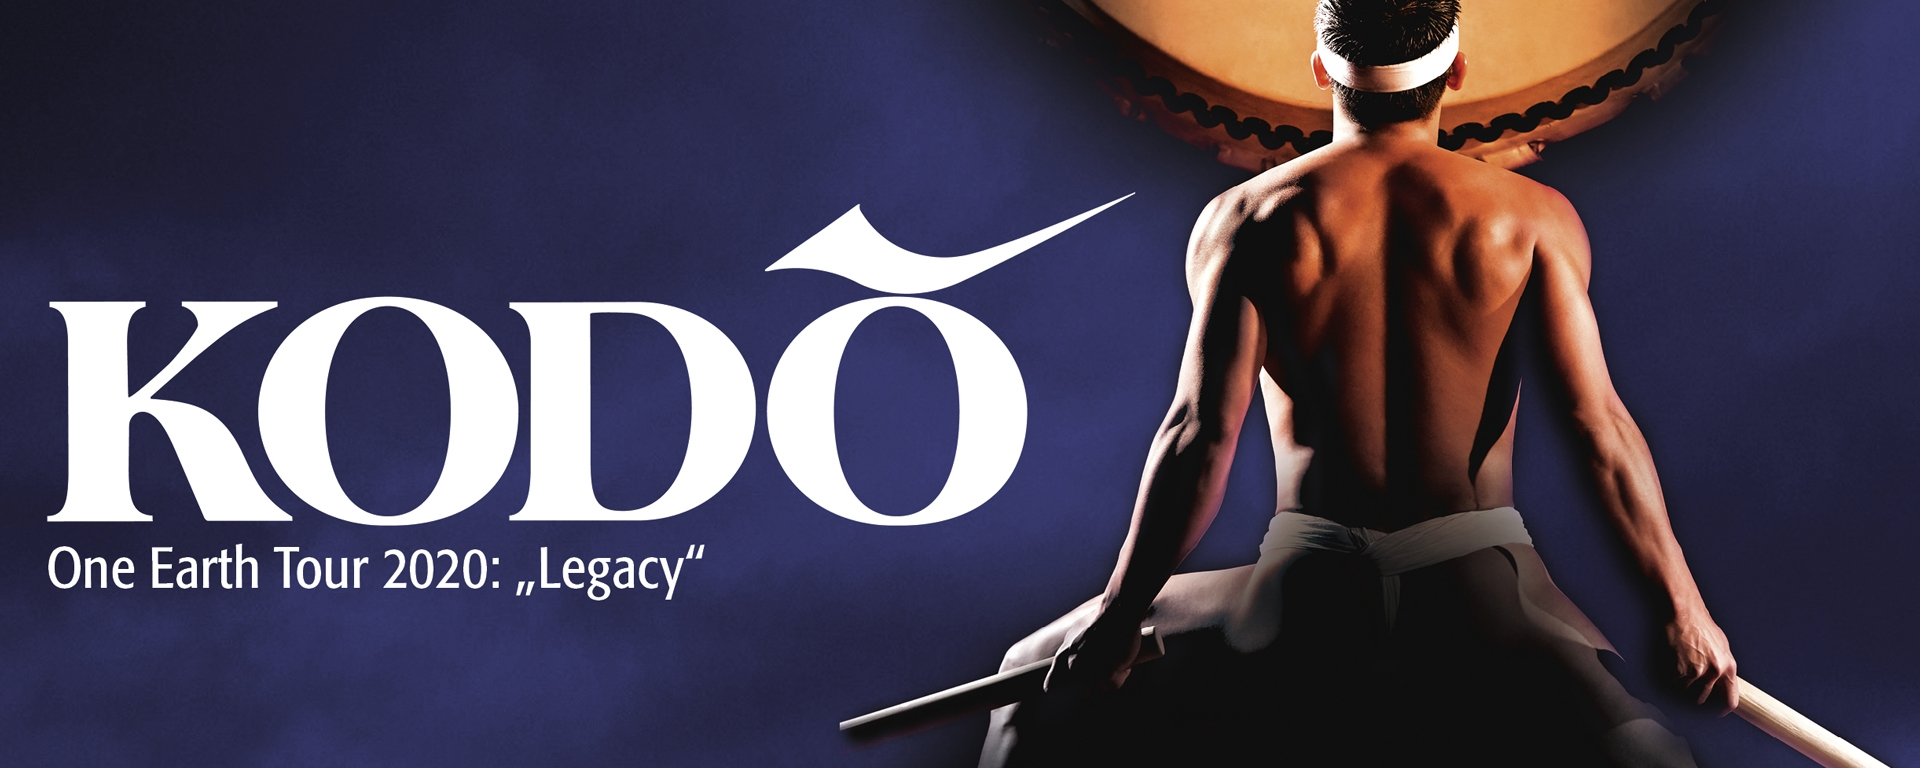 Kodo – One Earth Tour 2020: Legacy